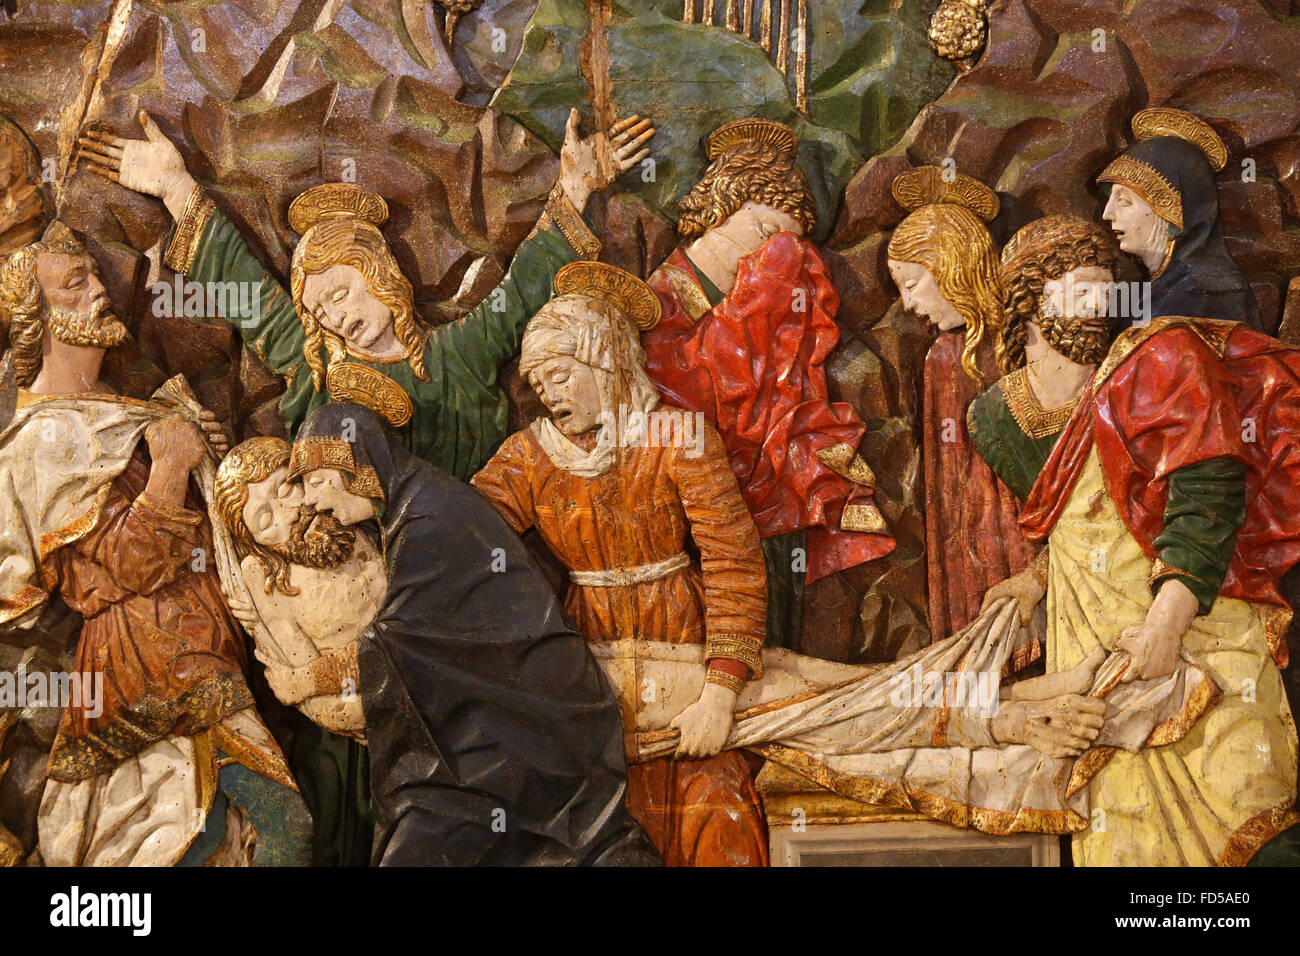 Sforza castle museum, Milan. Jesus laid down from the cross. 15th century. Carved, painted and gilded wood. - Stock Image